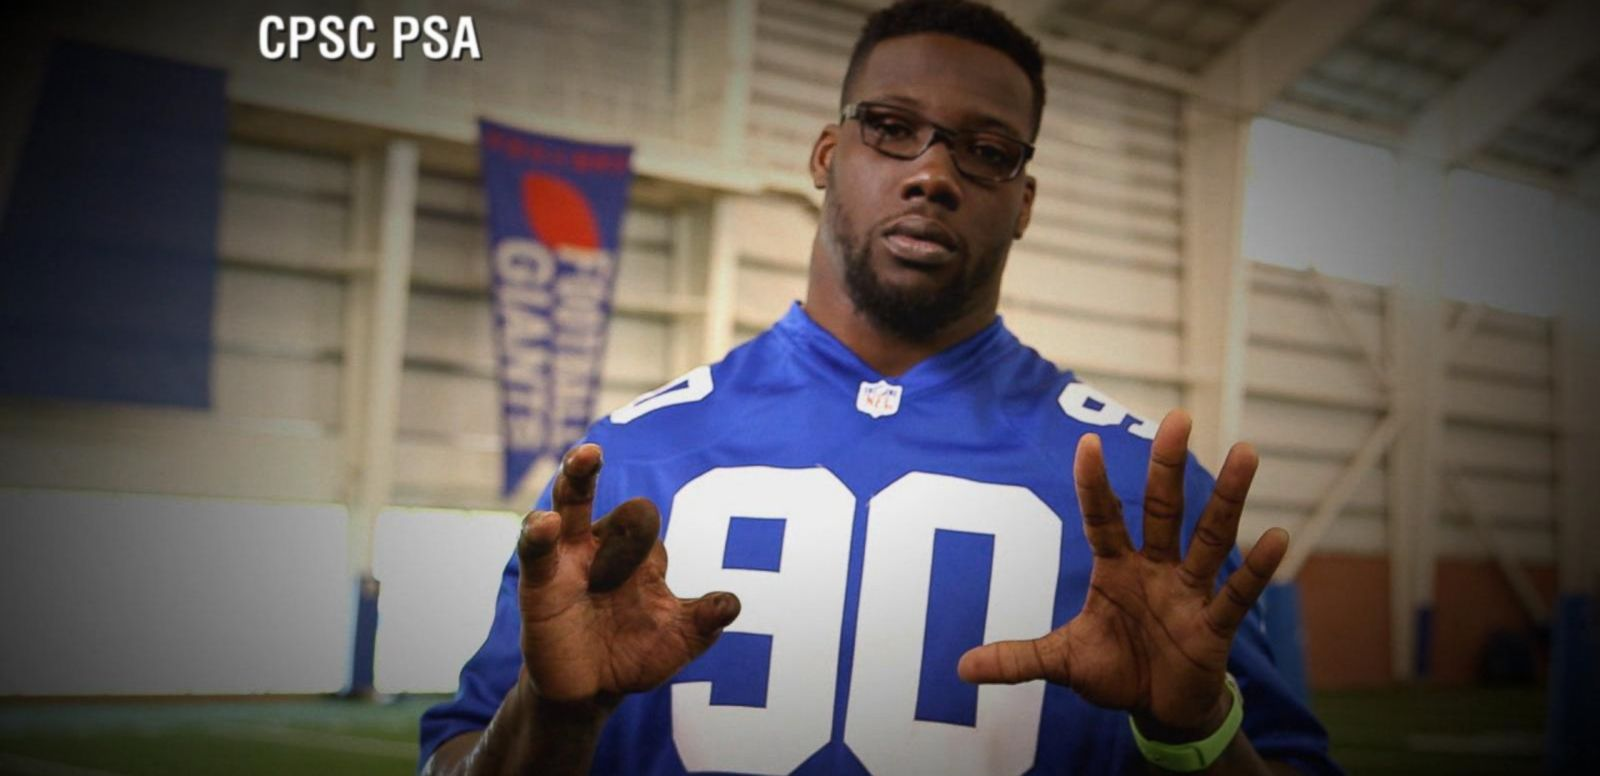 VIDEO: Exclusive: Jason Pierre-Paul in Fireworks Safety PSA